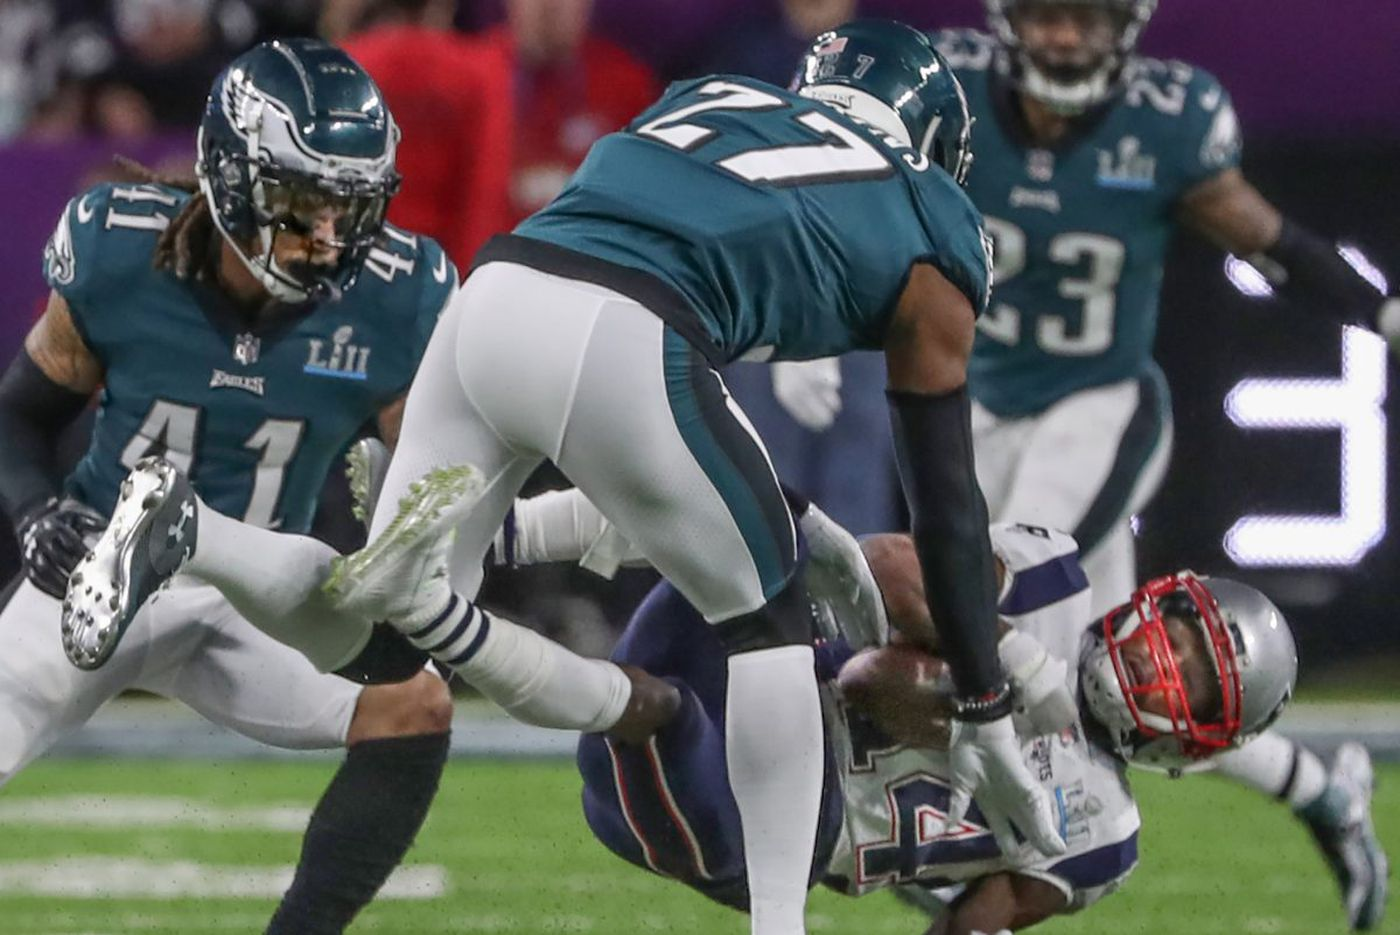 Will the Eagles draft a safety at 32? Probably not | Eagles offseason preview